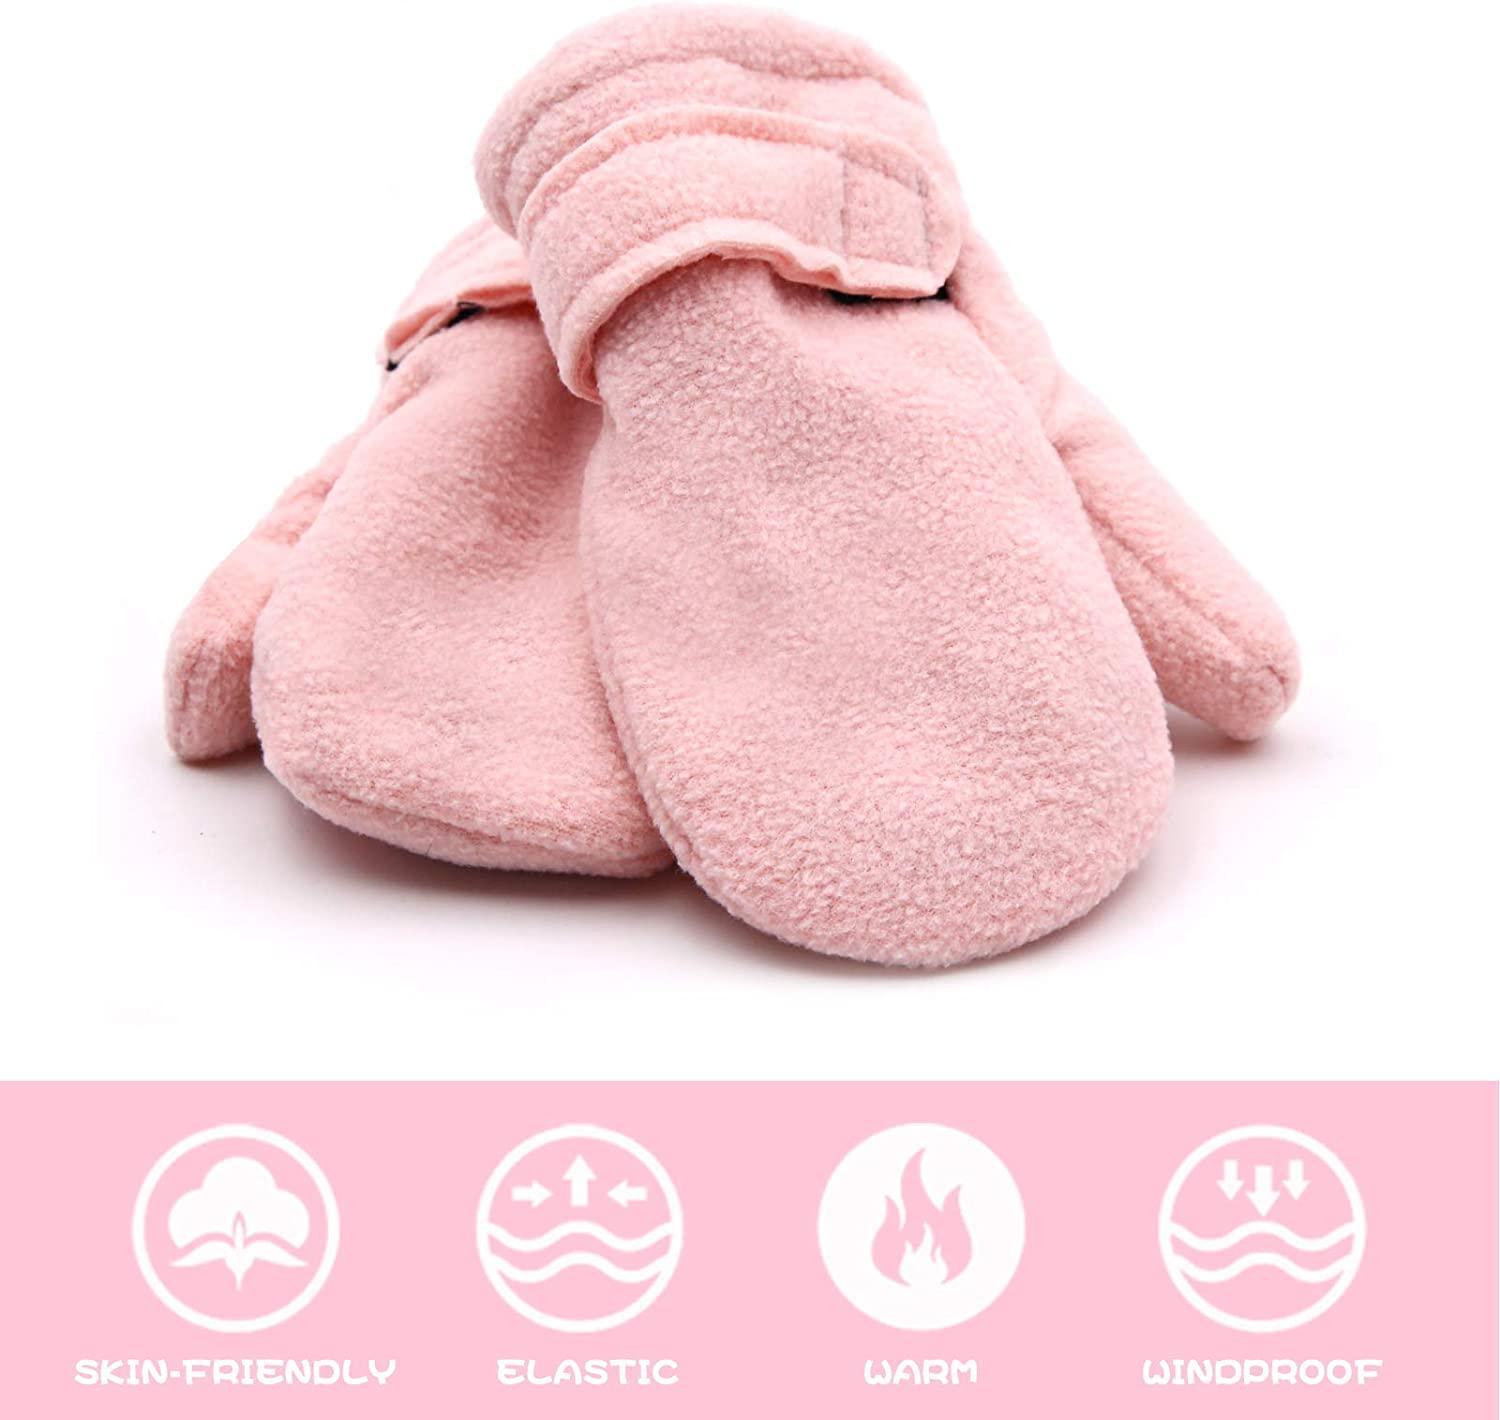 RAOEXI Toddler Infant Winter Mittens Lined with Fleece Easy-on Baby Boy Girls Warm Thick Gloves Outdoor